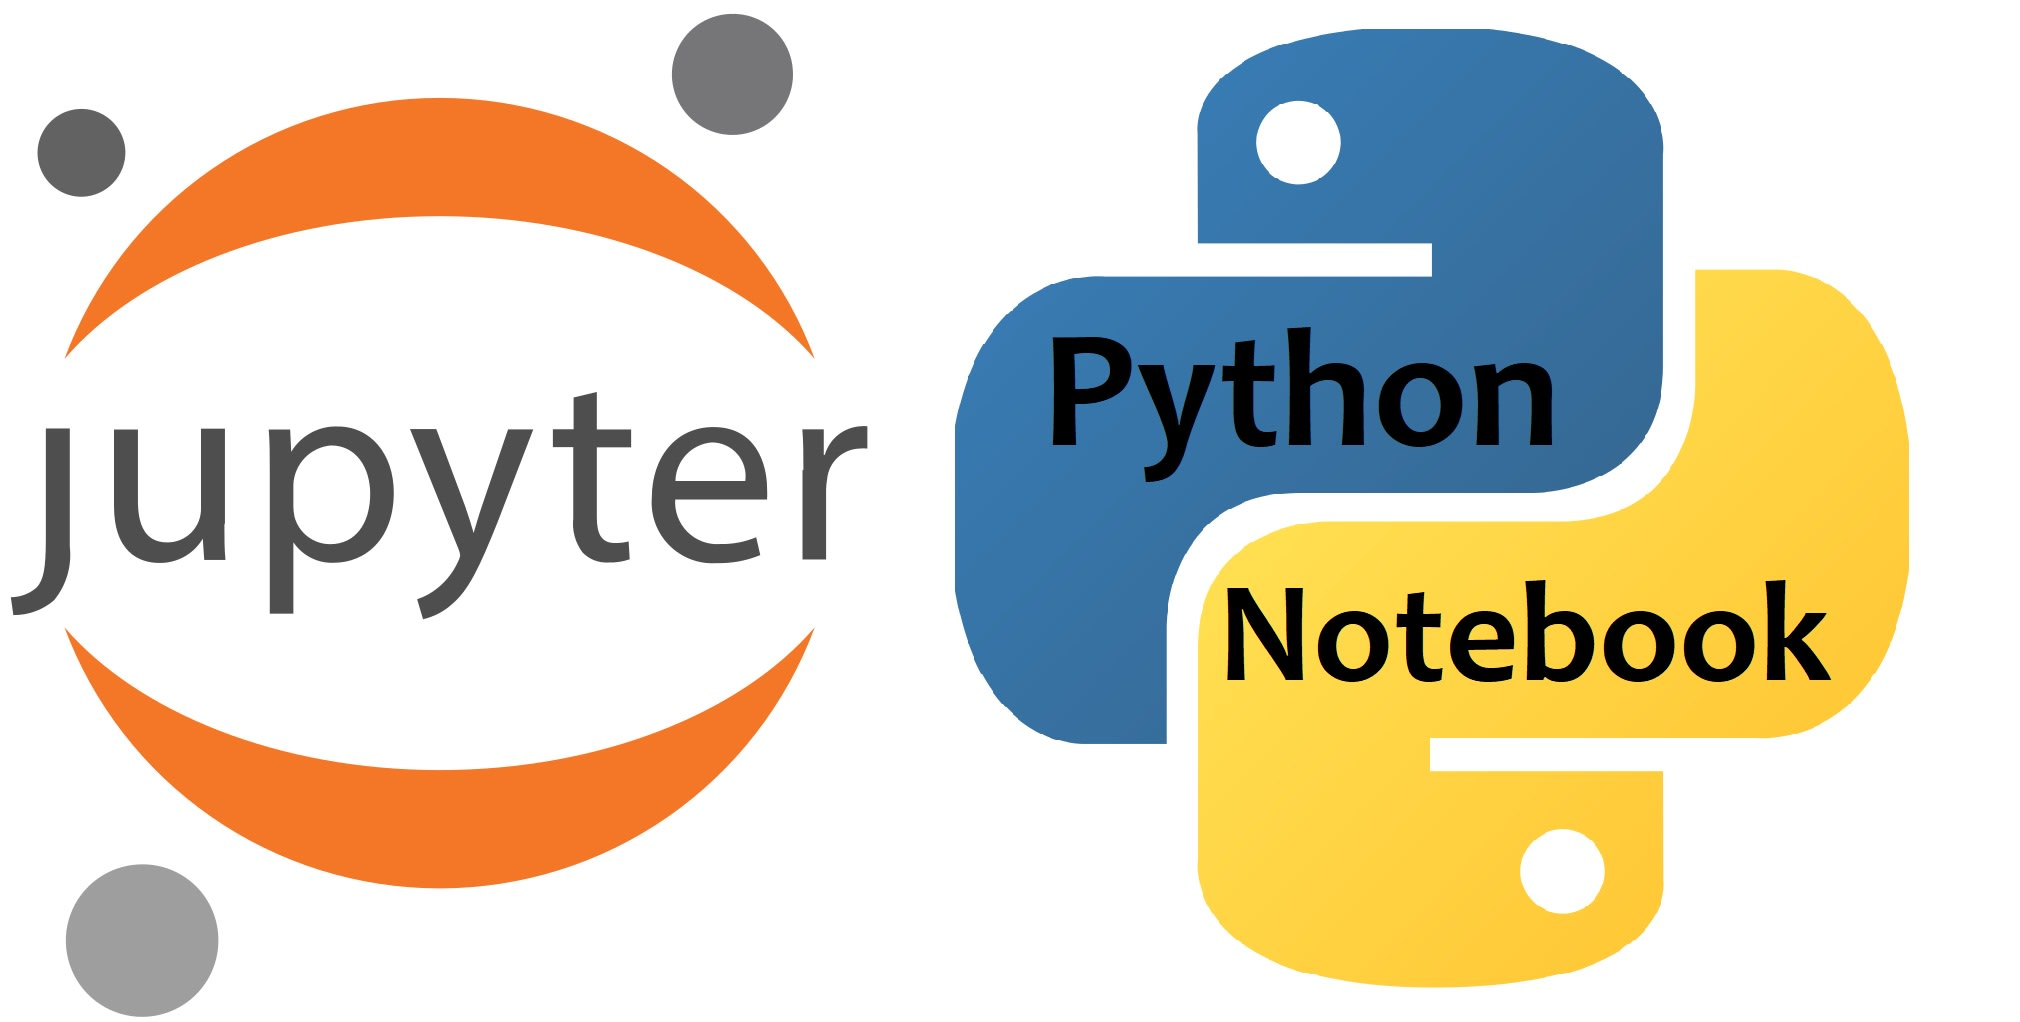 Getting Started with Python and Jupyter Notebooks